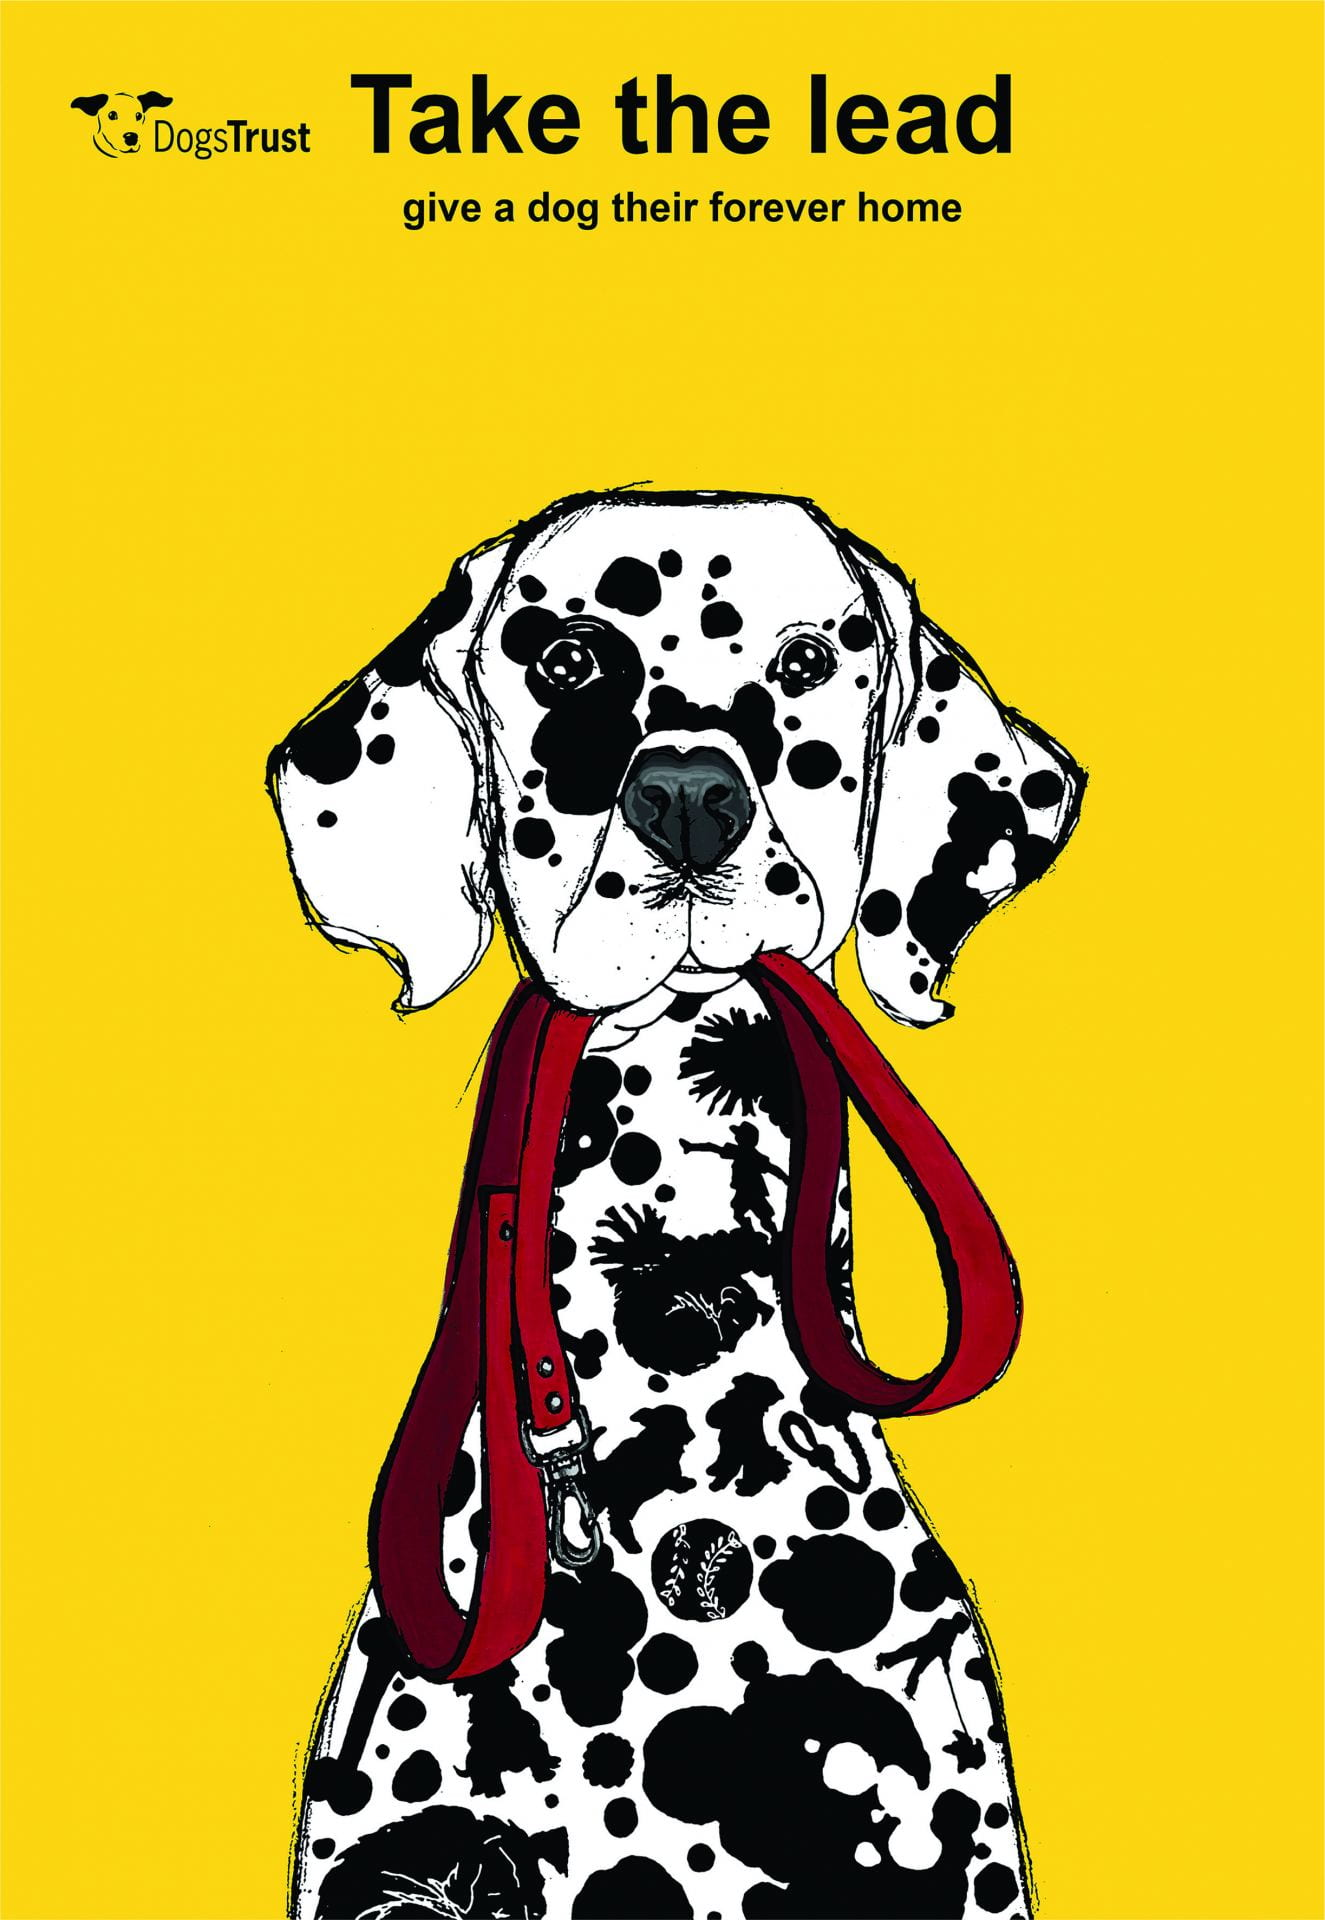 Illustration, a Dalmatian holding a red lead, text above reads: